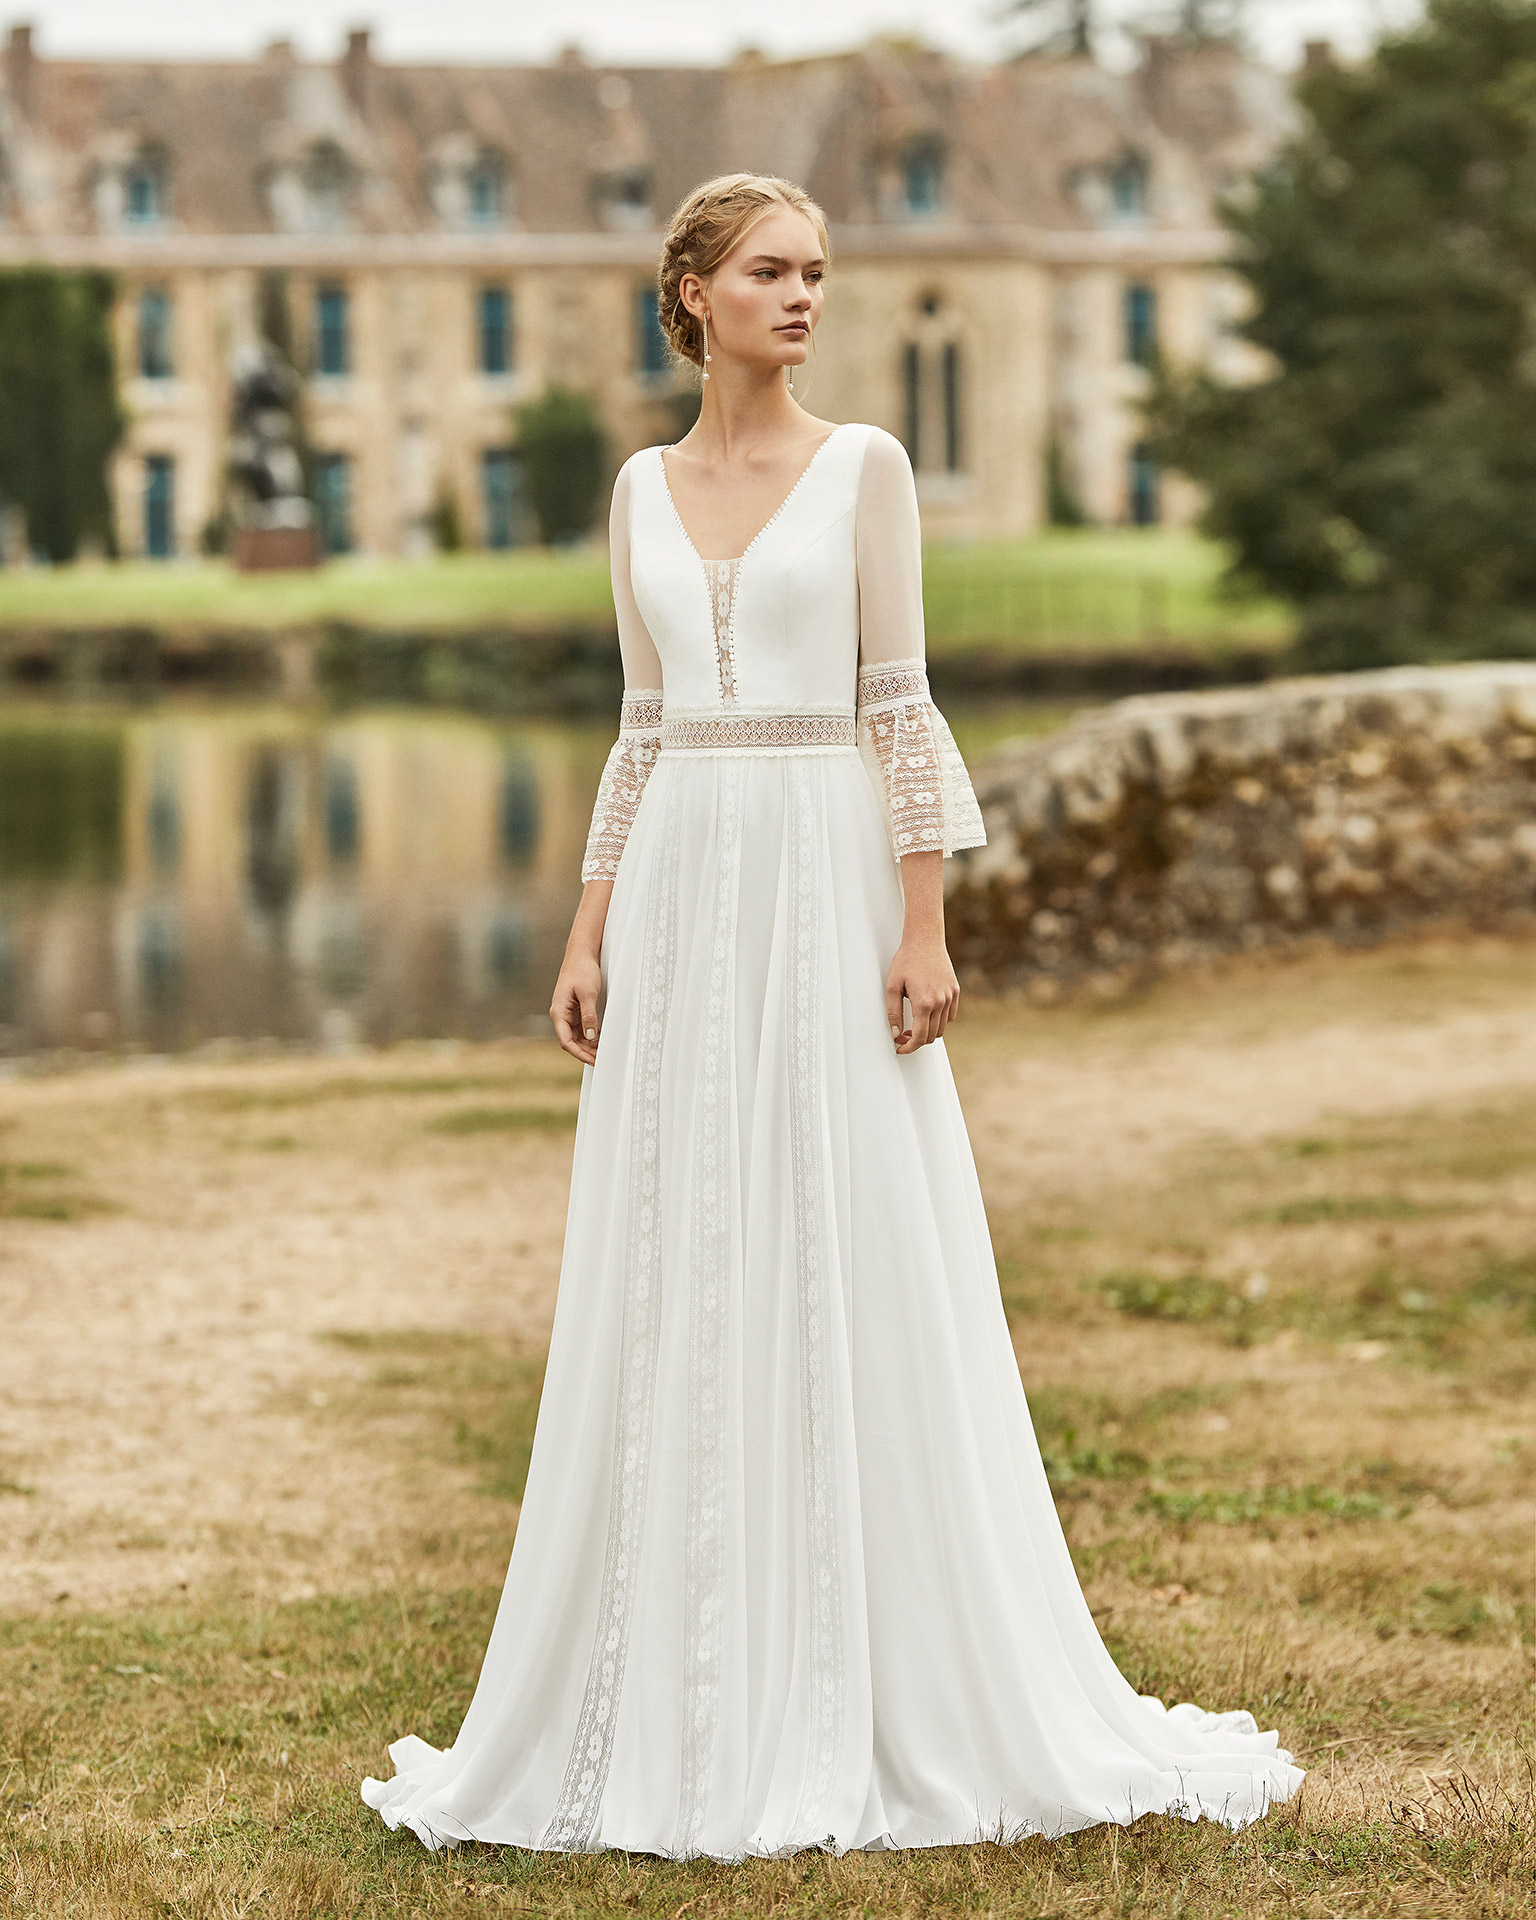 Wedding dress in chiffon. Deep-plunge V-neckline, three-quarter sleeves in chiffon with flared lace cuffs, lace belt and open V-back in lace with braid bow. 2021 ALMANOVIA Collection.